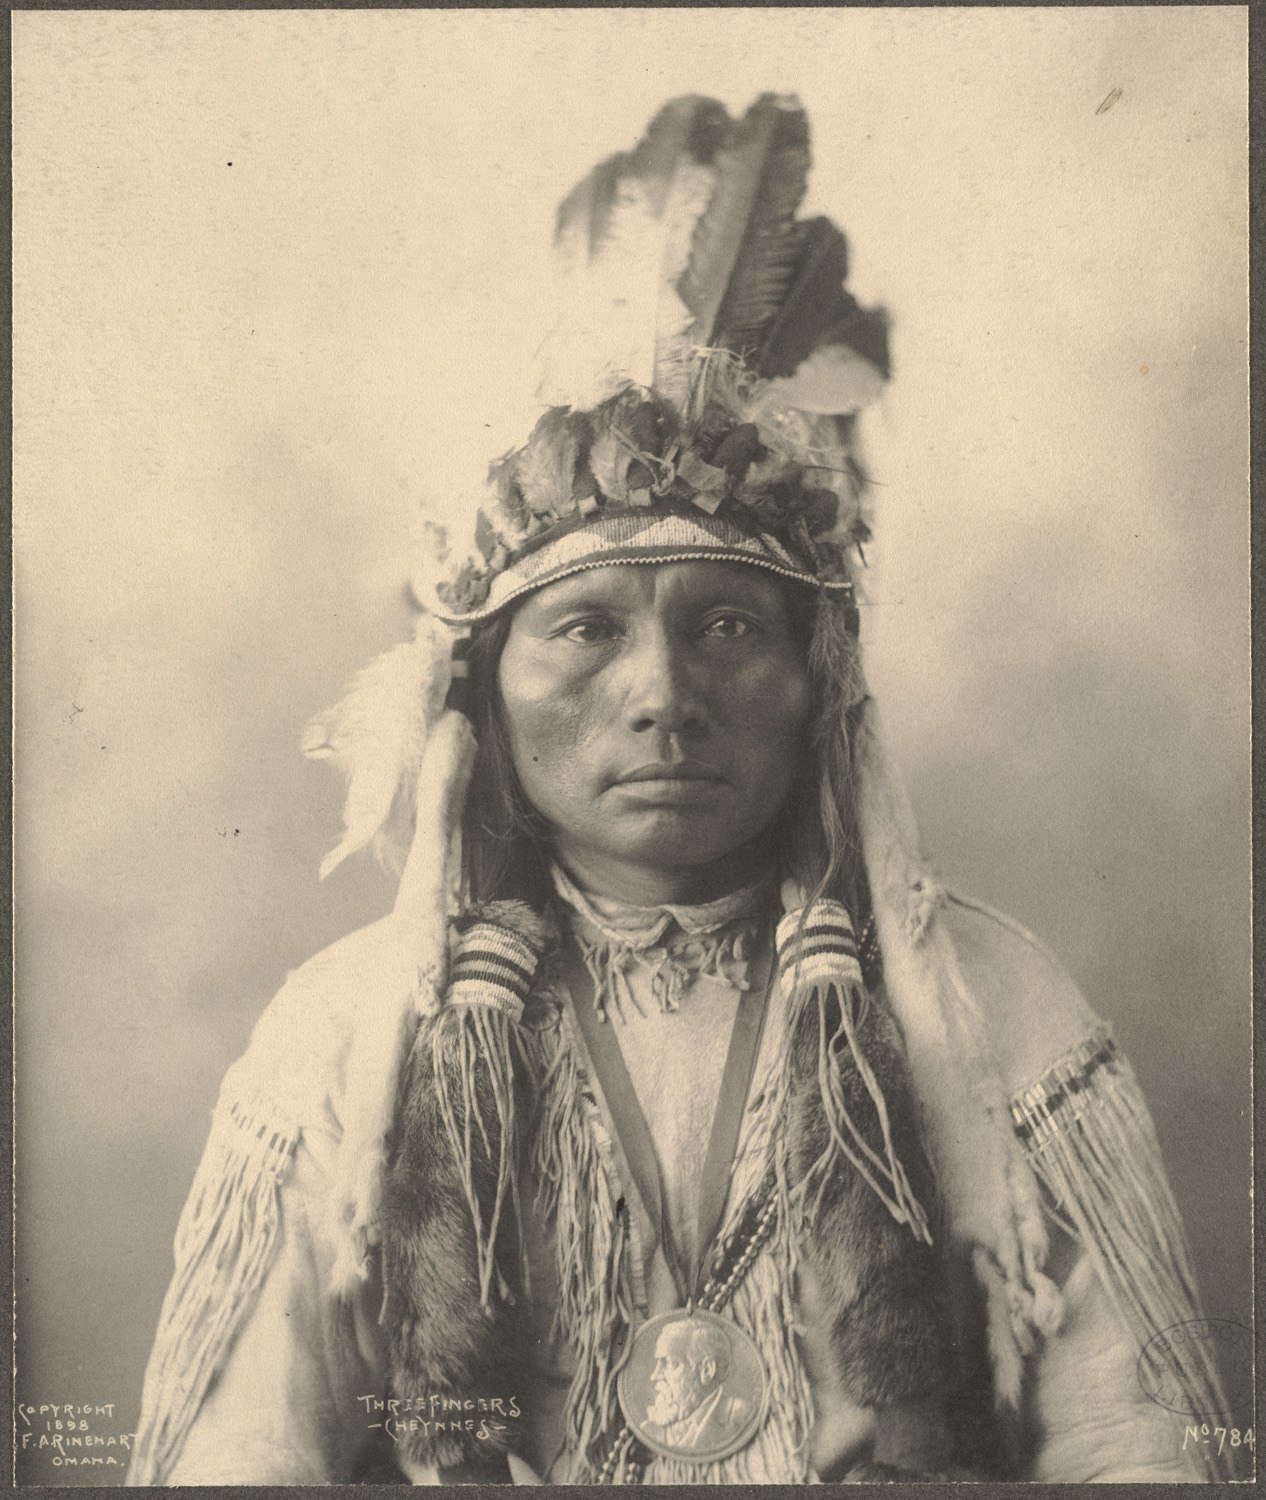 Three Fingers, Cheyennes, 1899. (Photo by Frank A. Rinehart)